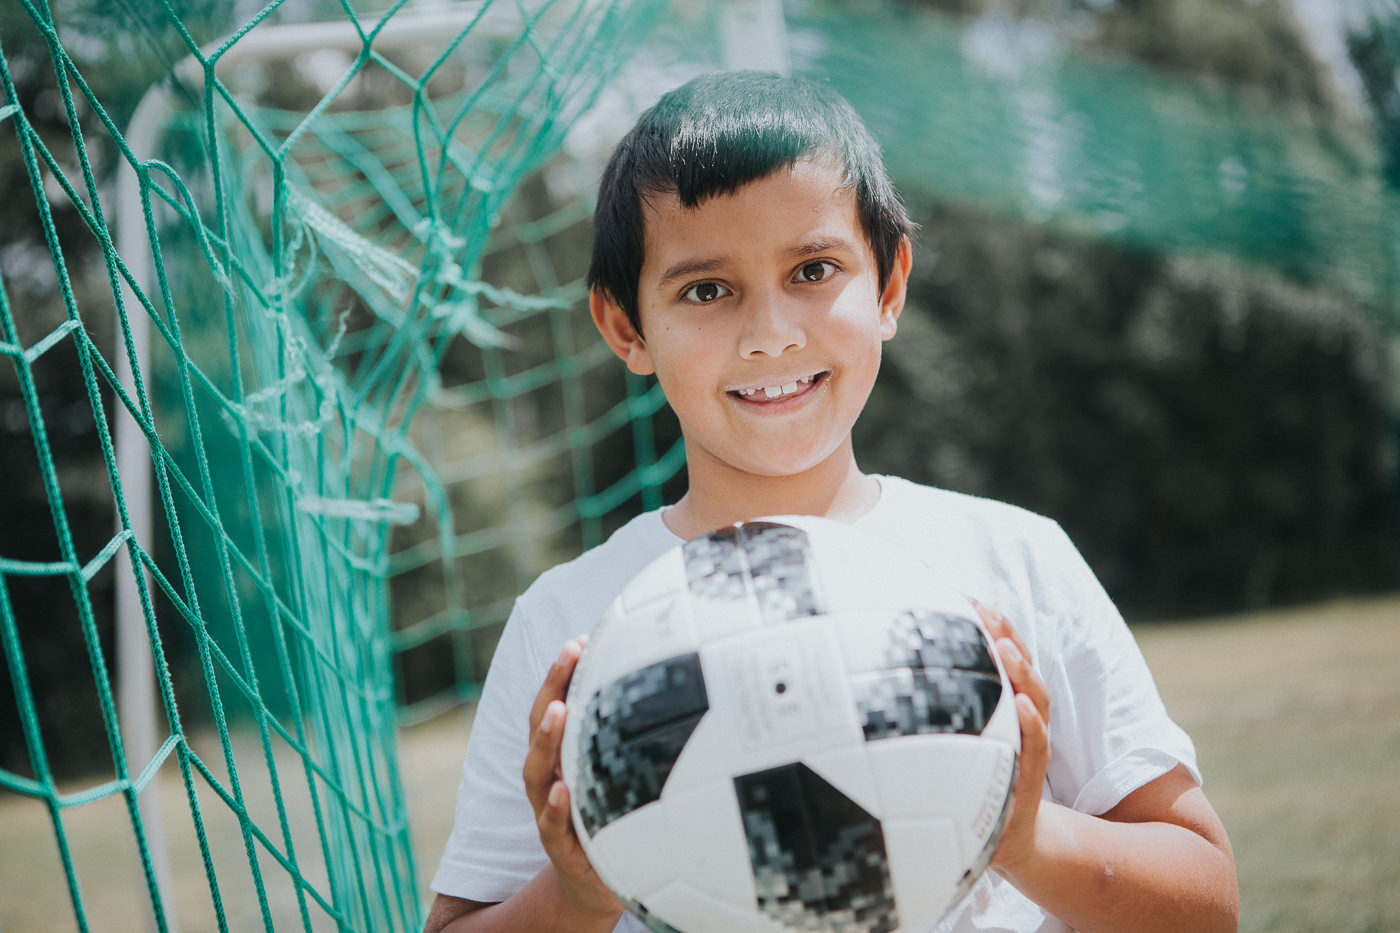 boy holding soccer ball - with net in the background - soccer advertising photo